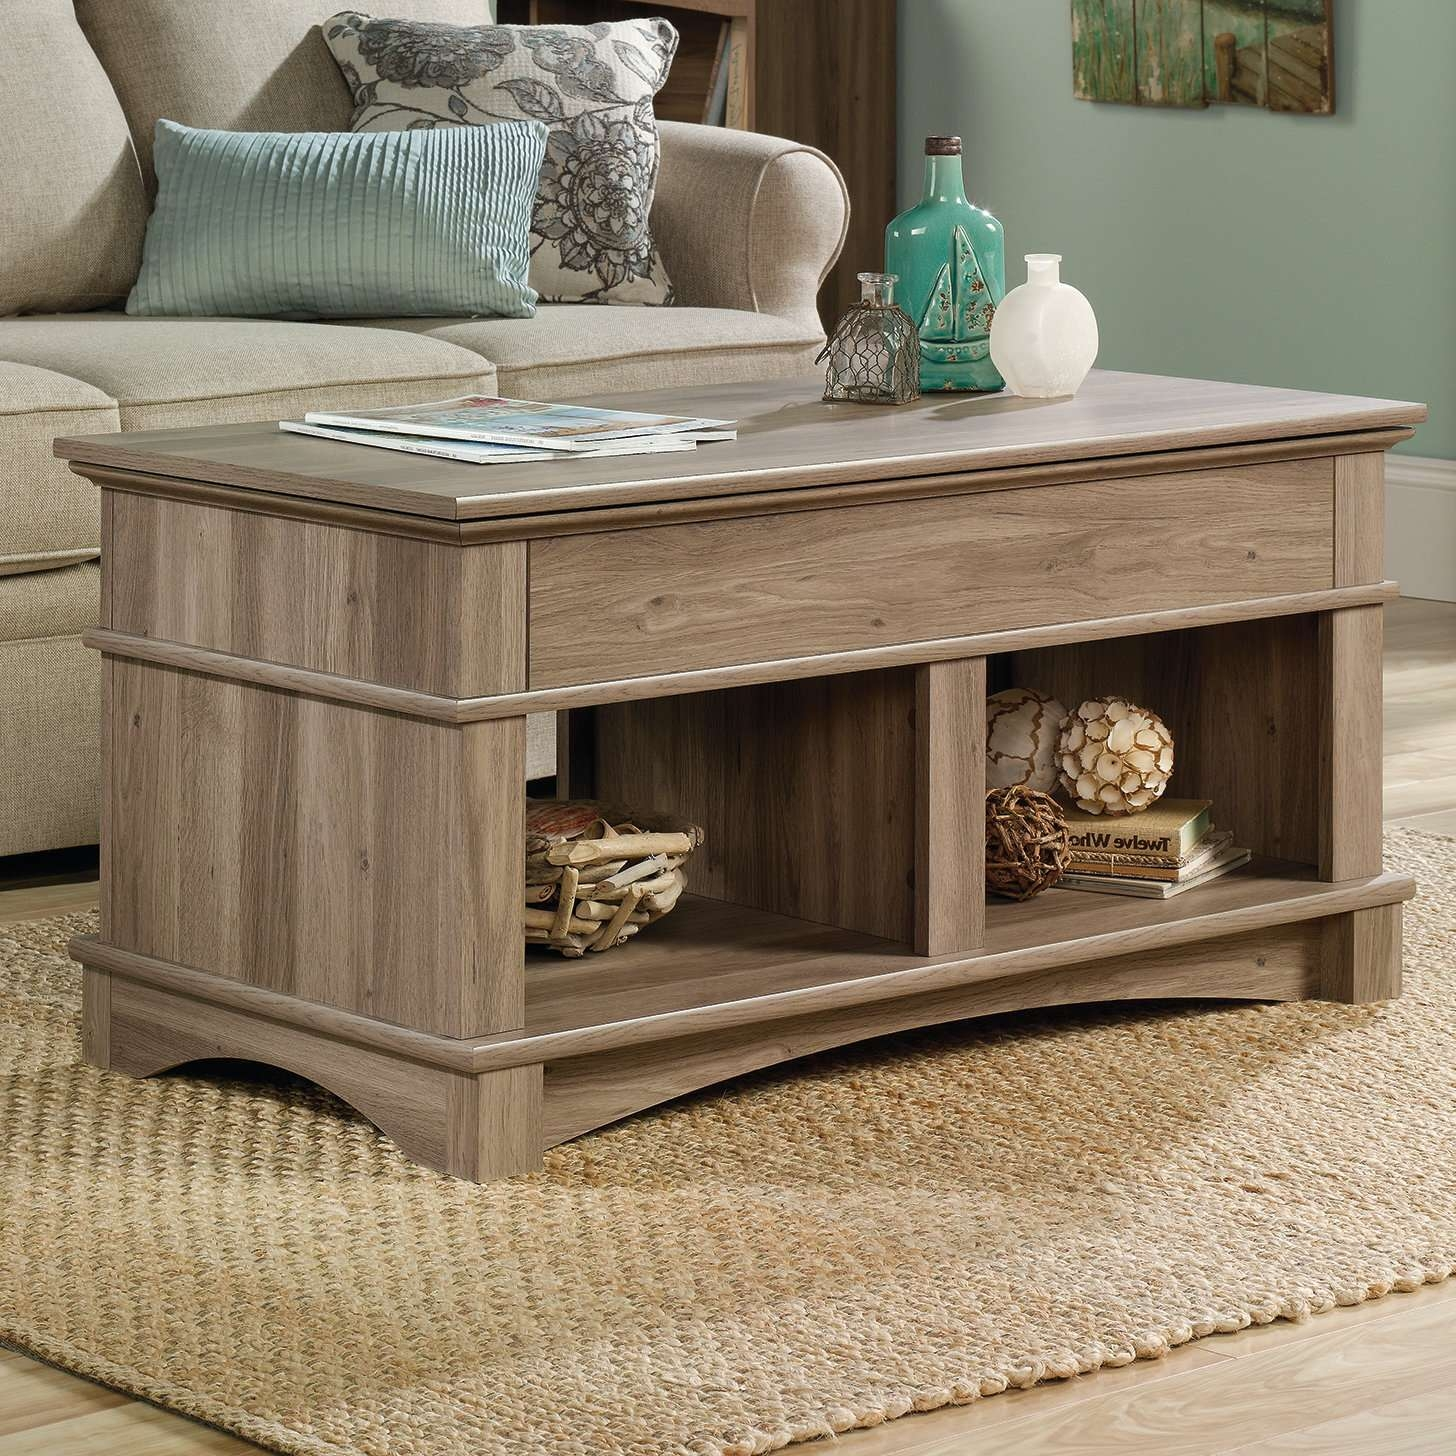 Lift Top Coffee Tables You'll Love (View 11 of 20)